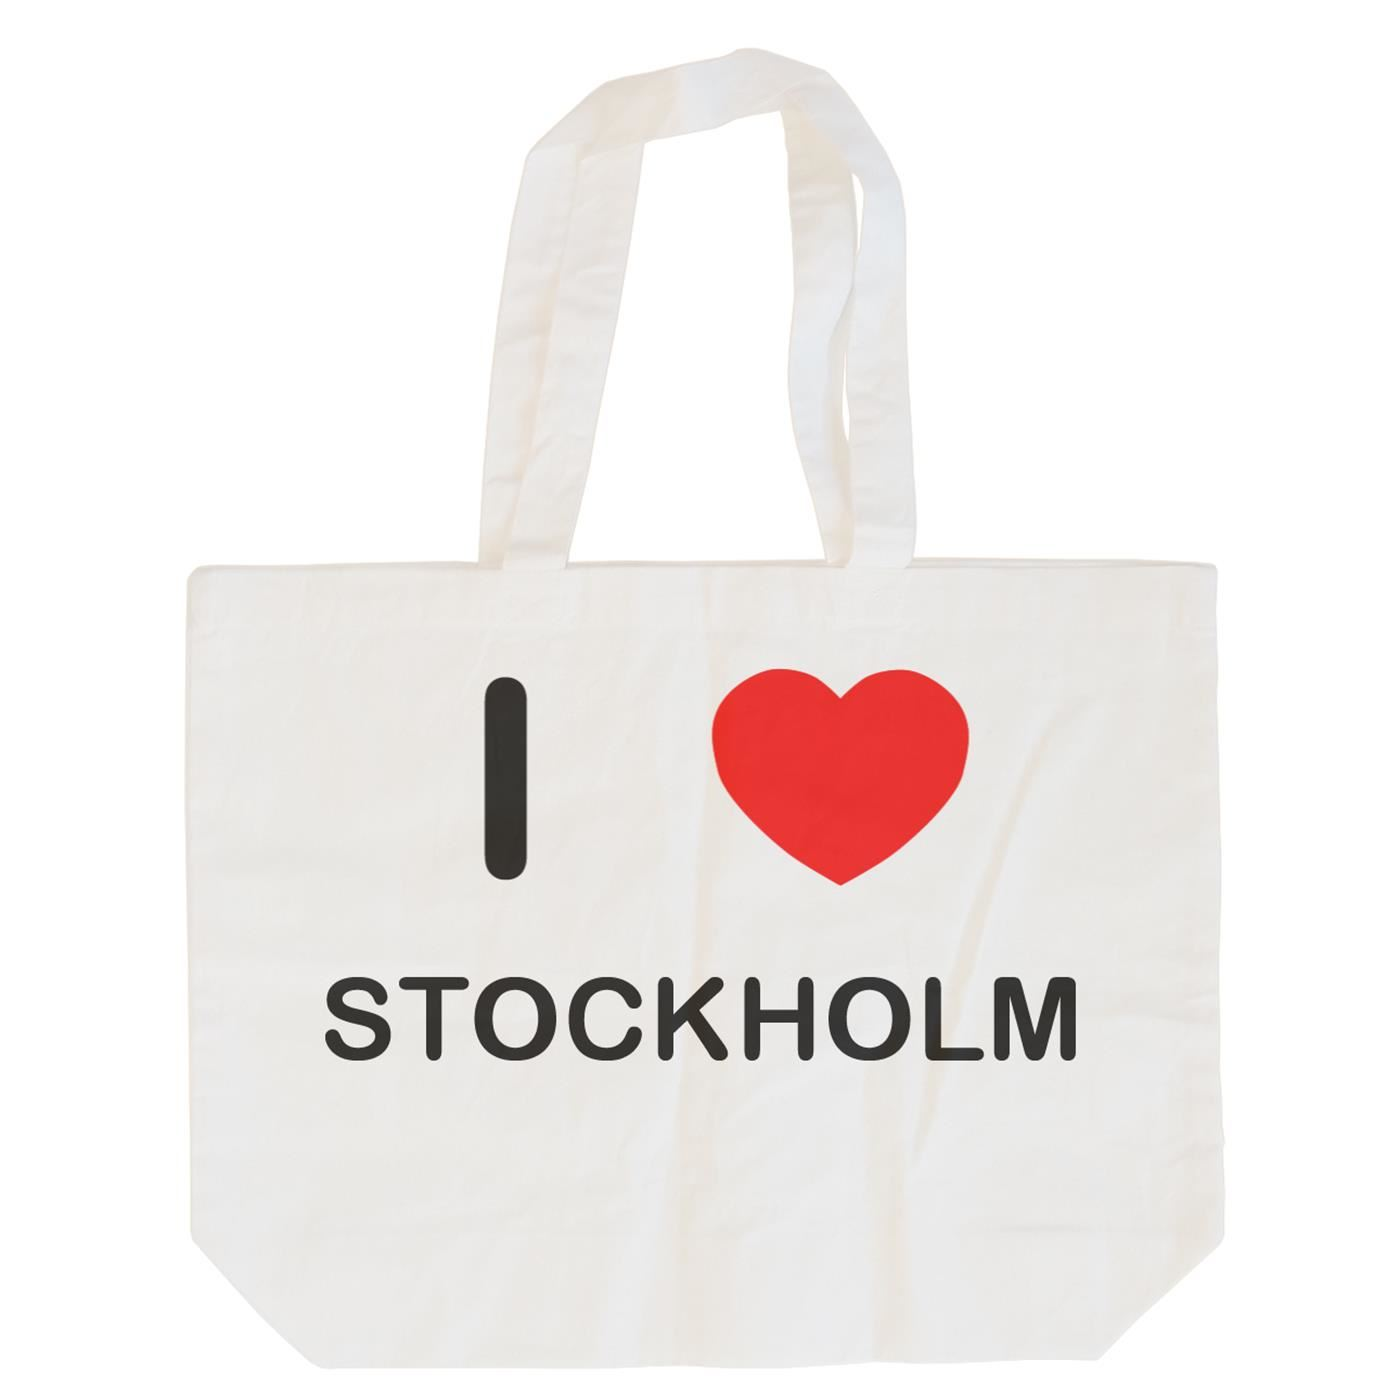 I Love Stockholm - Cotton Bag | Size choice Tote, Shopper or Sling